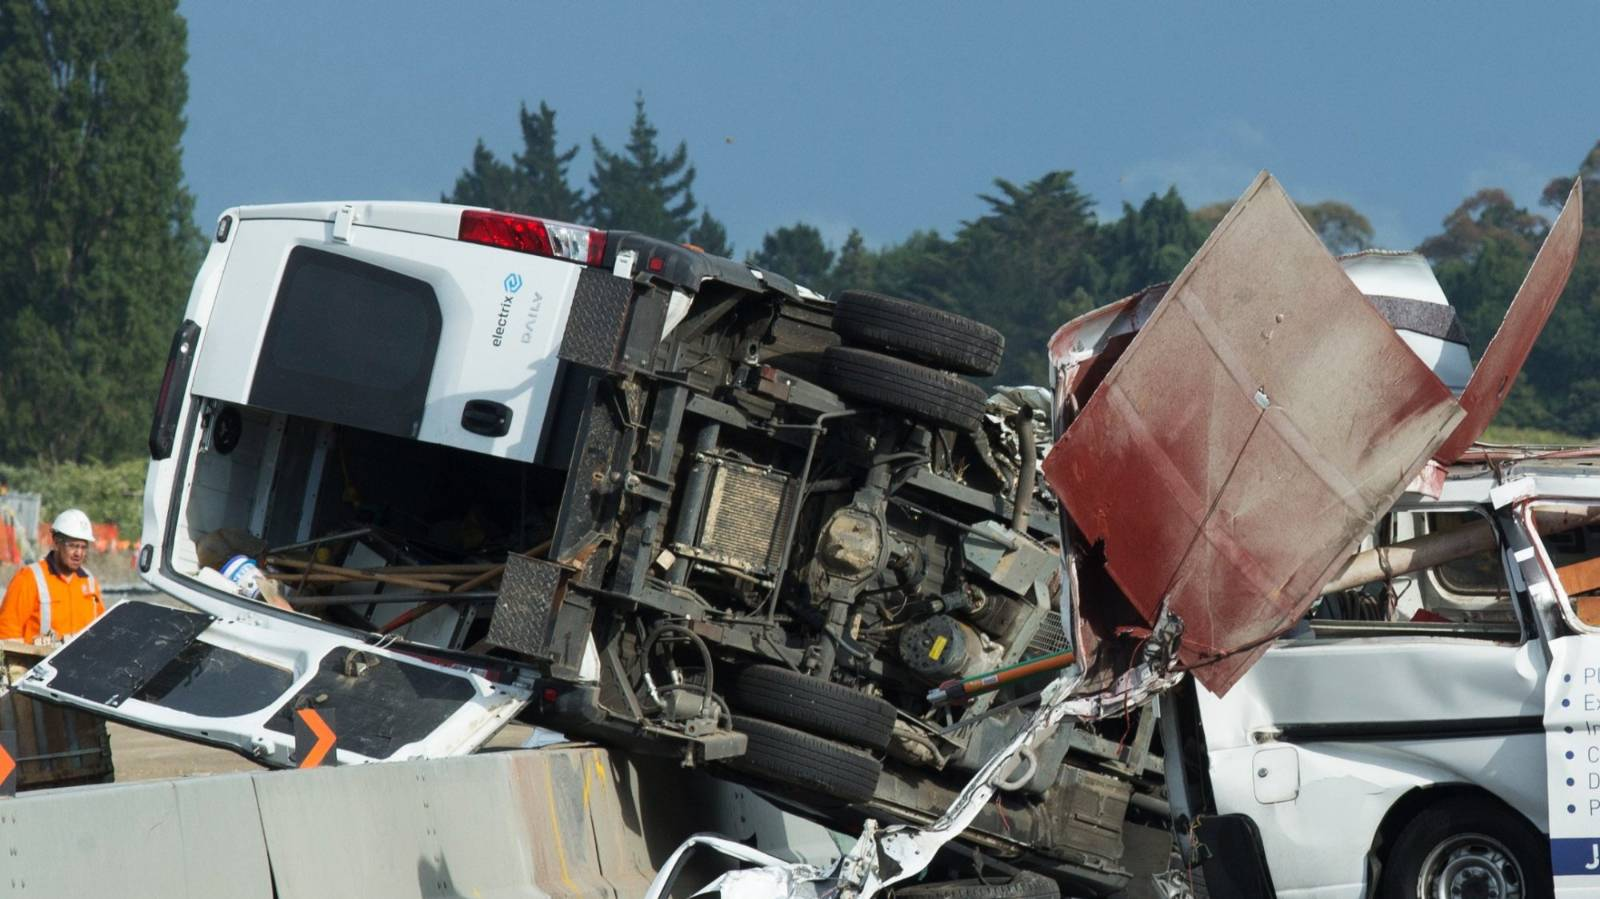 Police warned texting driver days before car crash